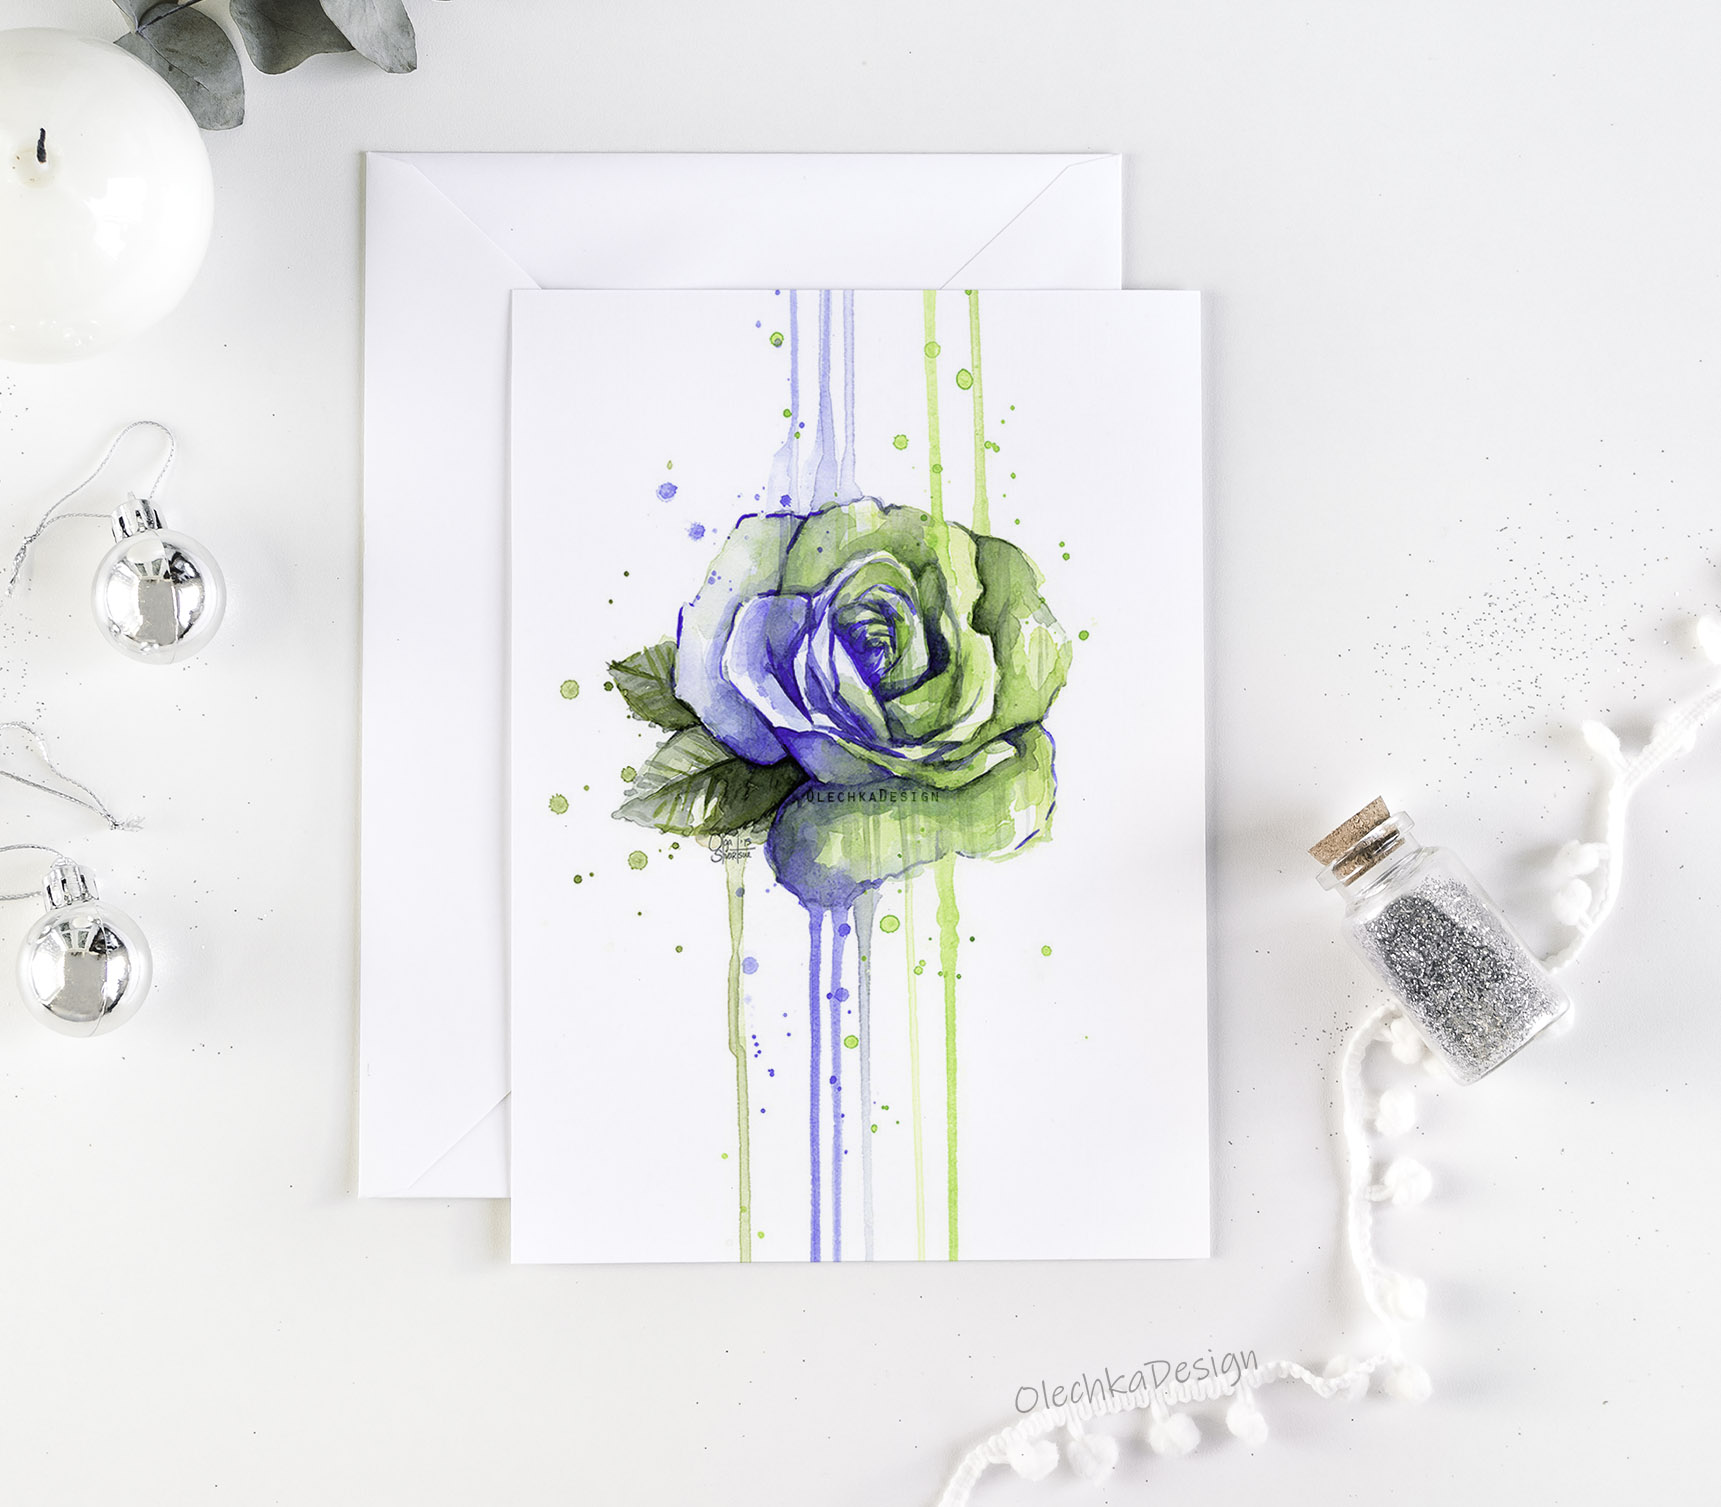 rose-watercolor-blue-green.jpg